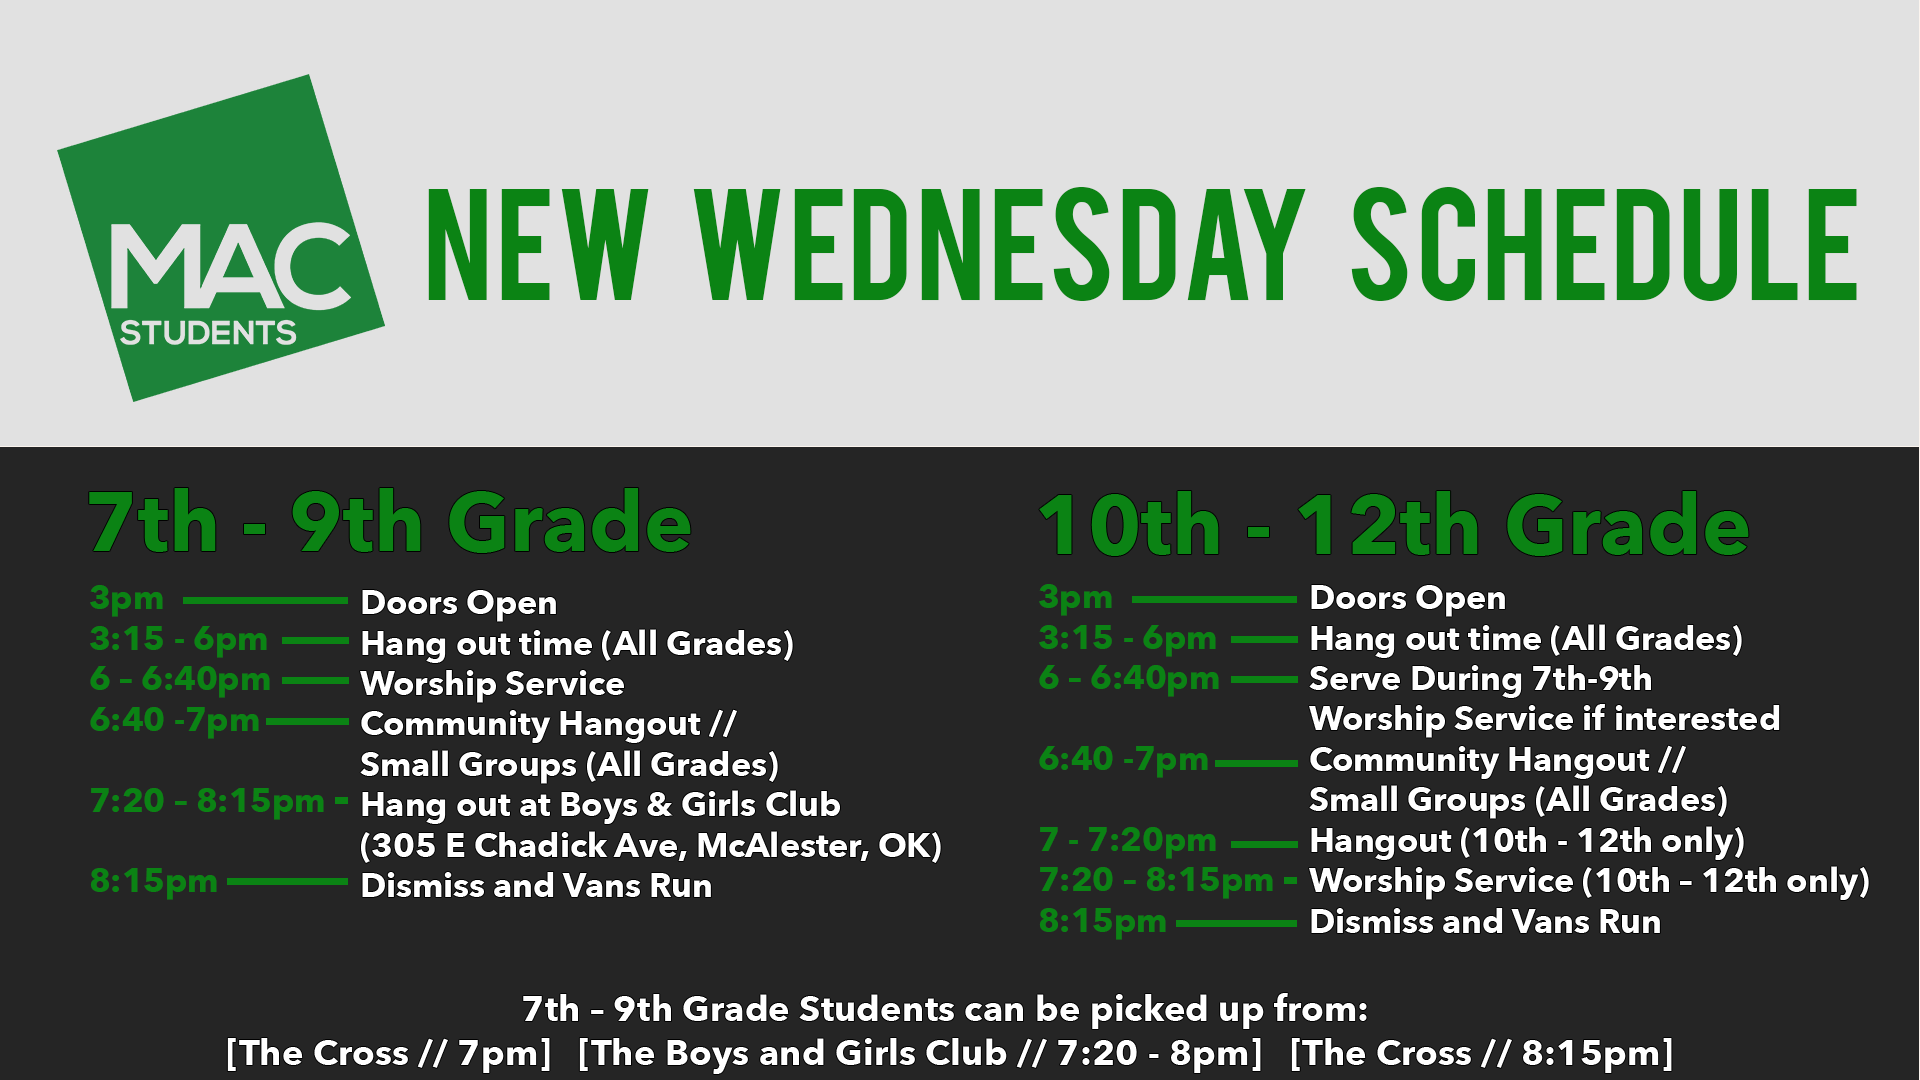 Mac Students New Wednesday Schedule.png